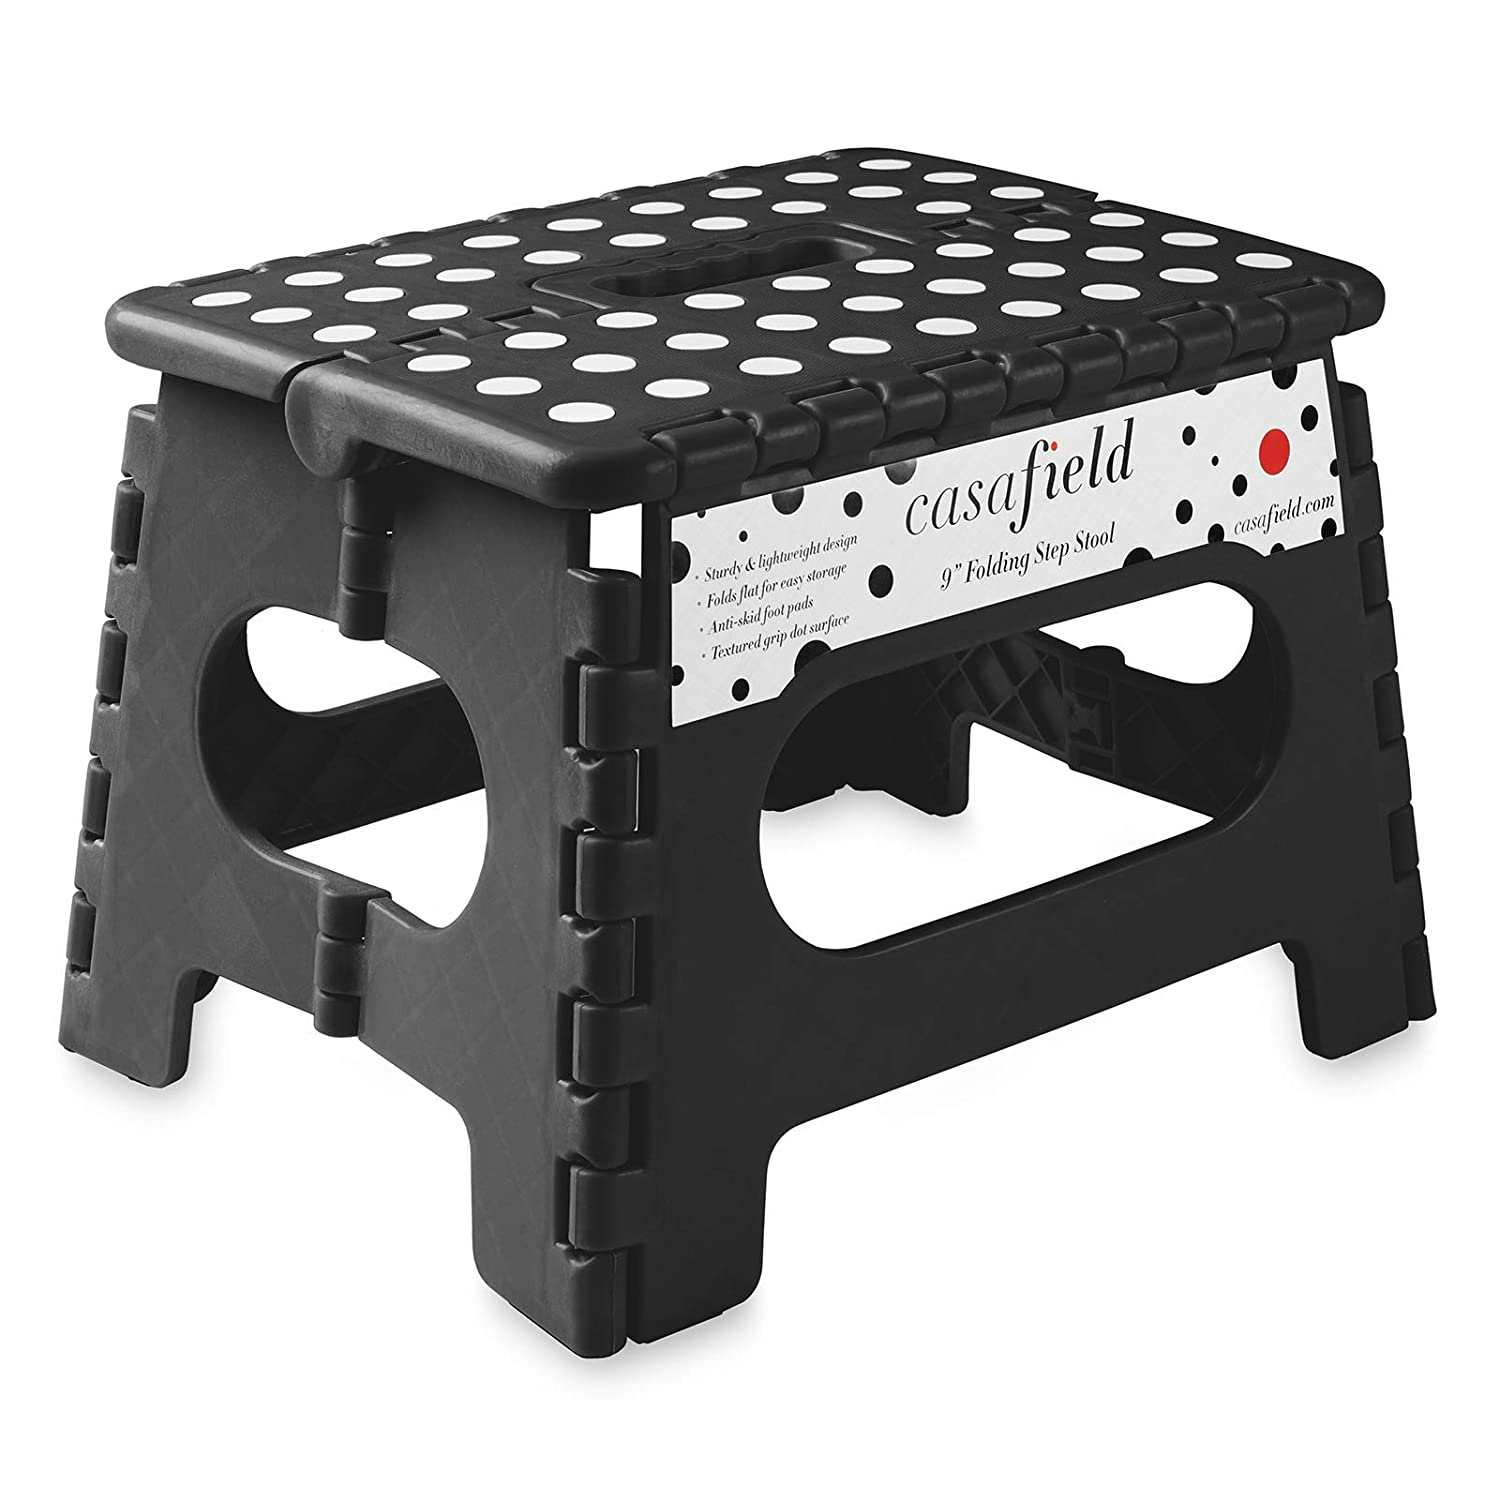 Superb Casafield 9 Folding Step Stool With Handle Black Portable Collapsible Small Plastic Foot Stool For Kids And Adults Use In The Kitchen Bathroom Ocoug Best Dining Table And Chair Ideas Images Ocougorg